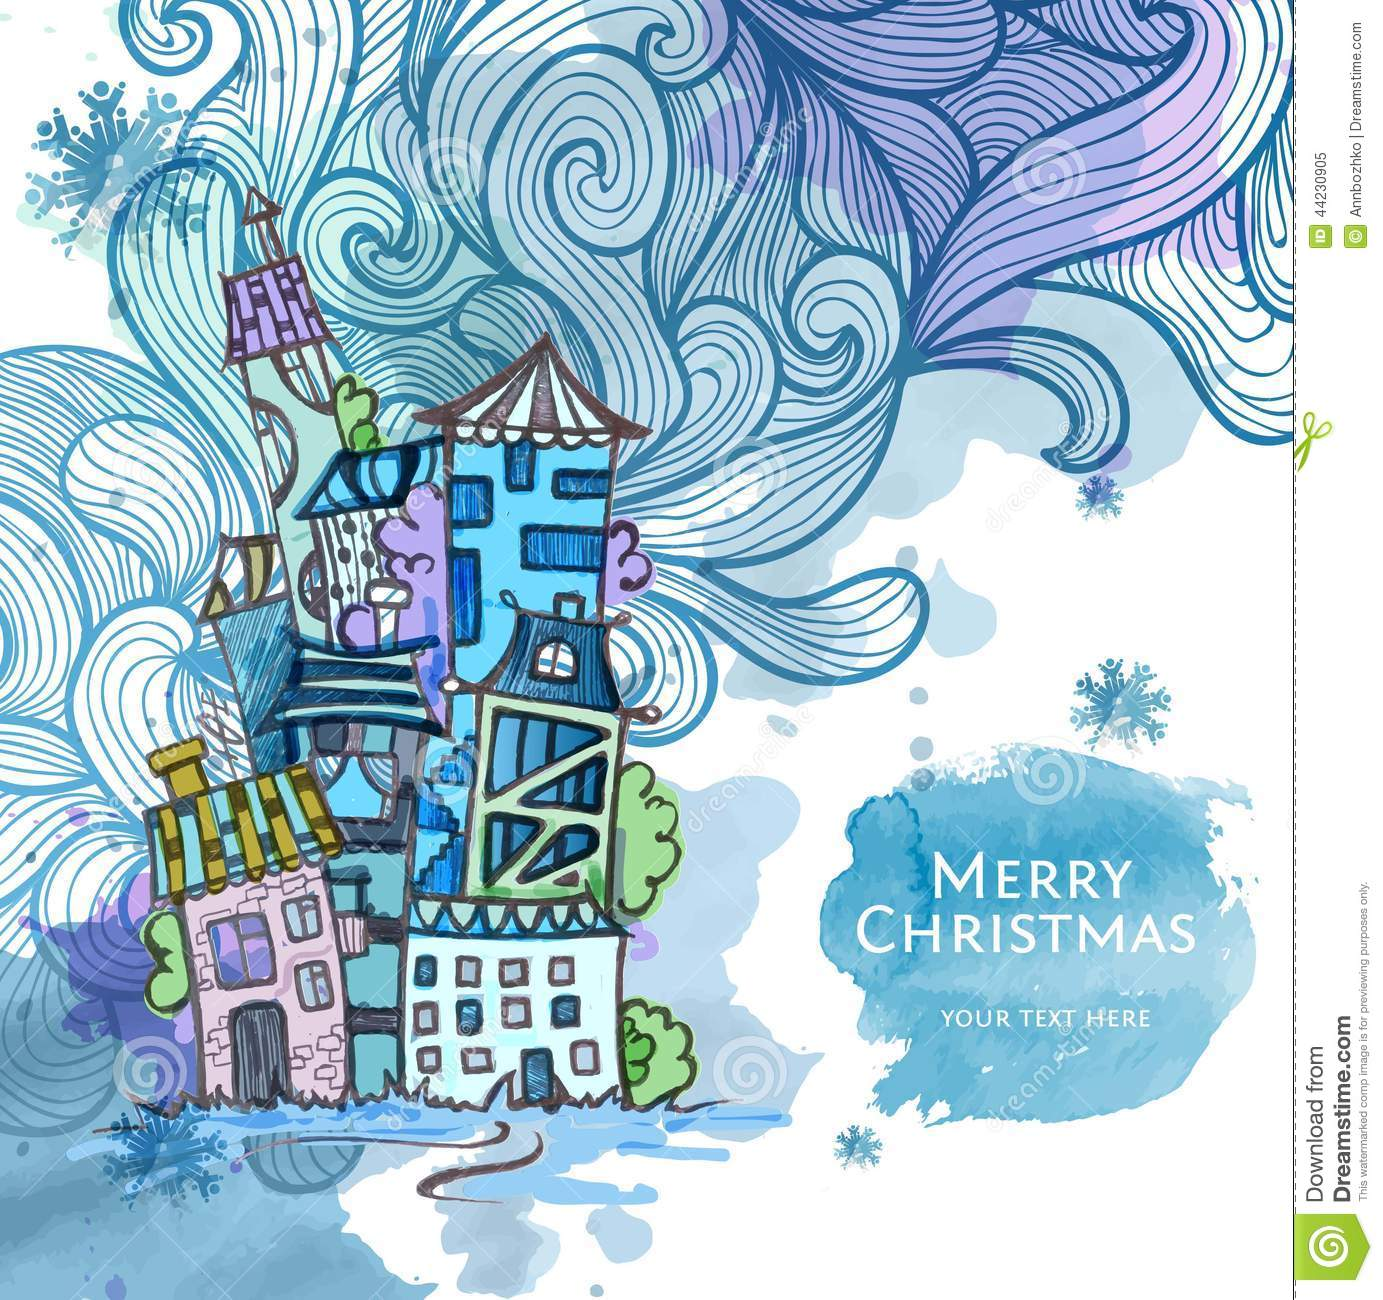 Decorative Sketch Of City. Christmas Background Stock Vector - Image 44230905